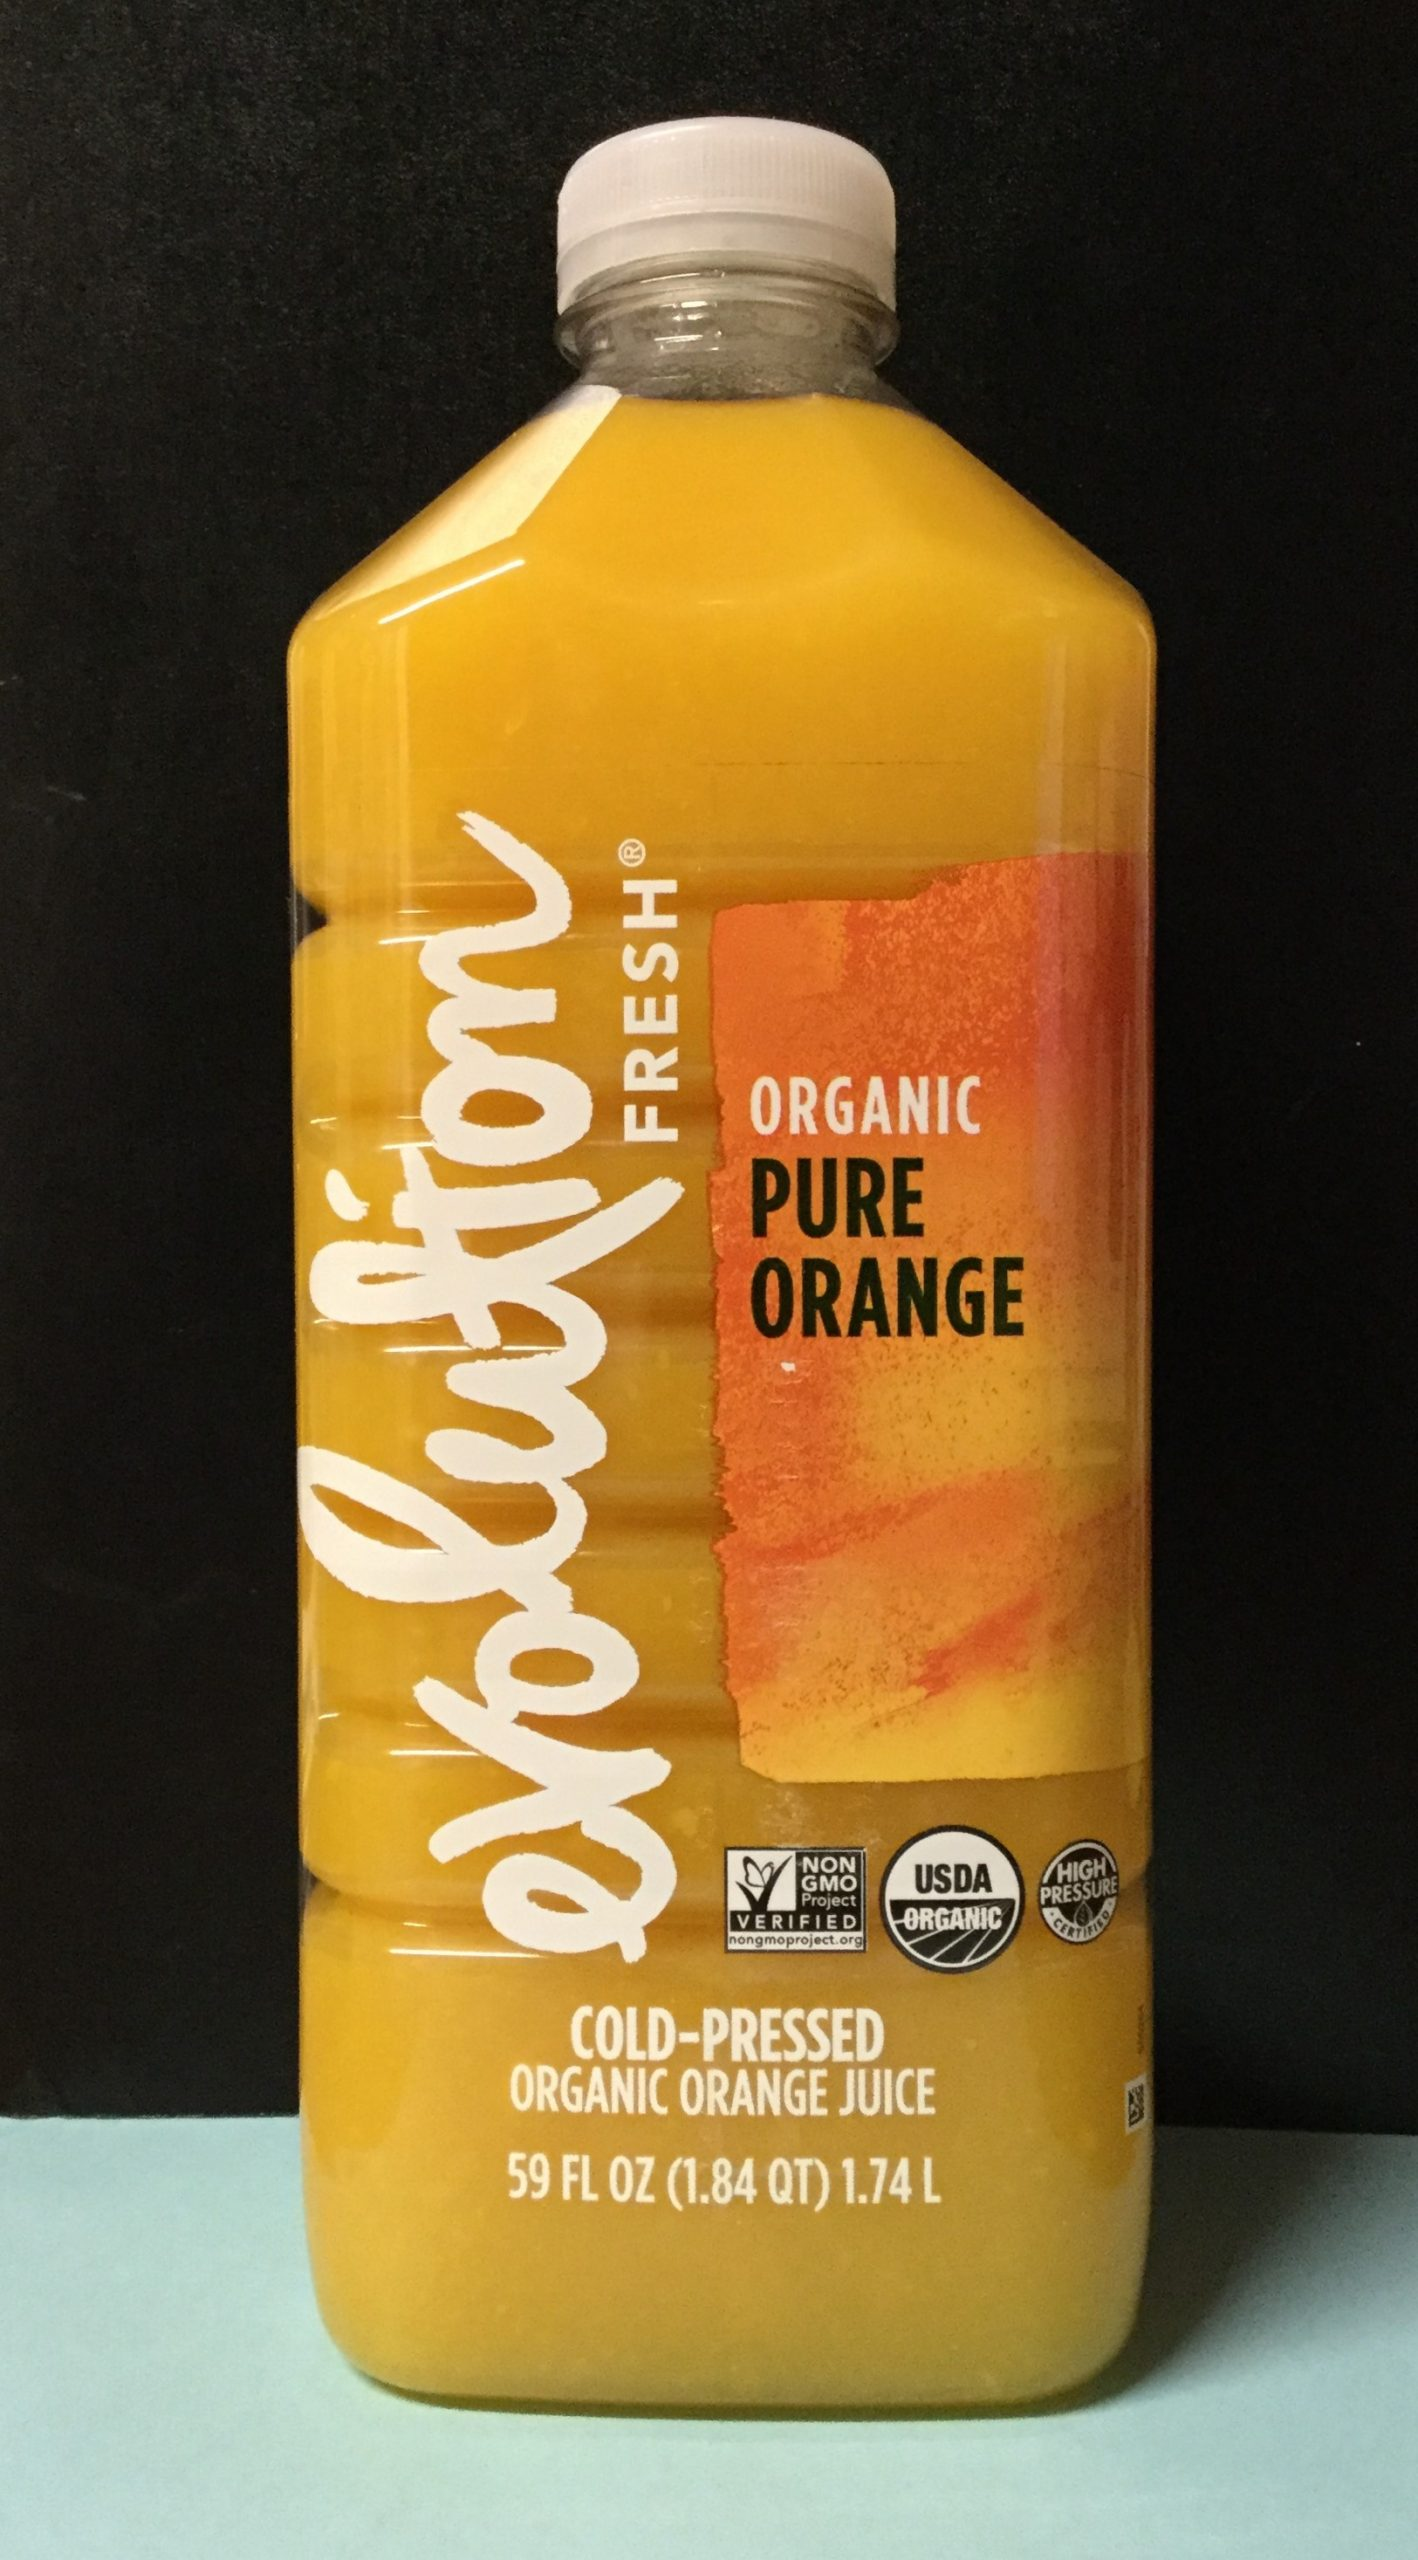 EVOLUTION Cold-Pressed Organic Orange Juice